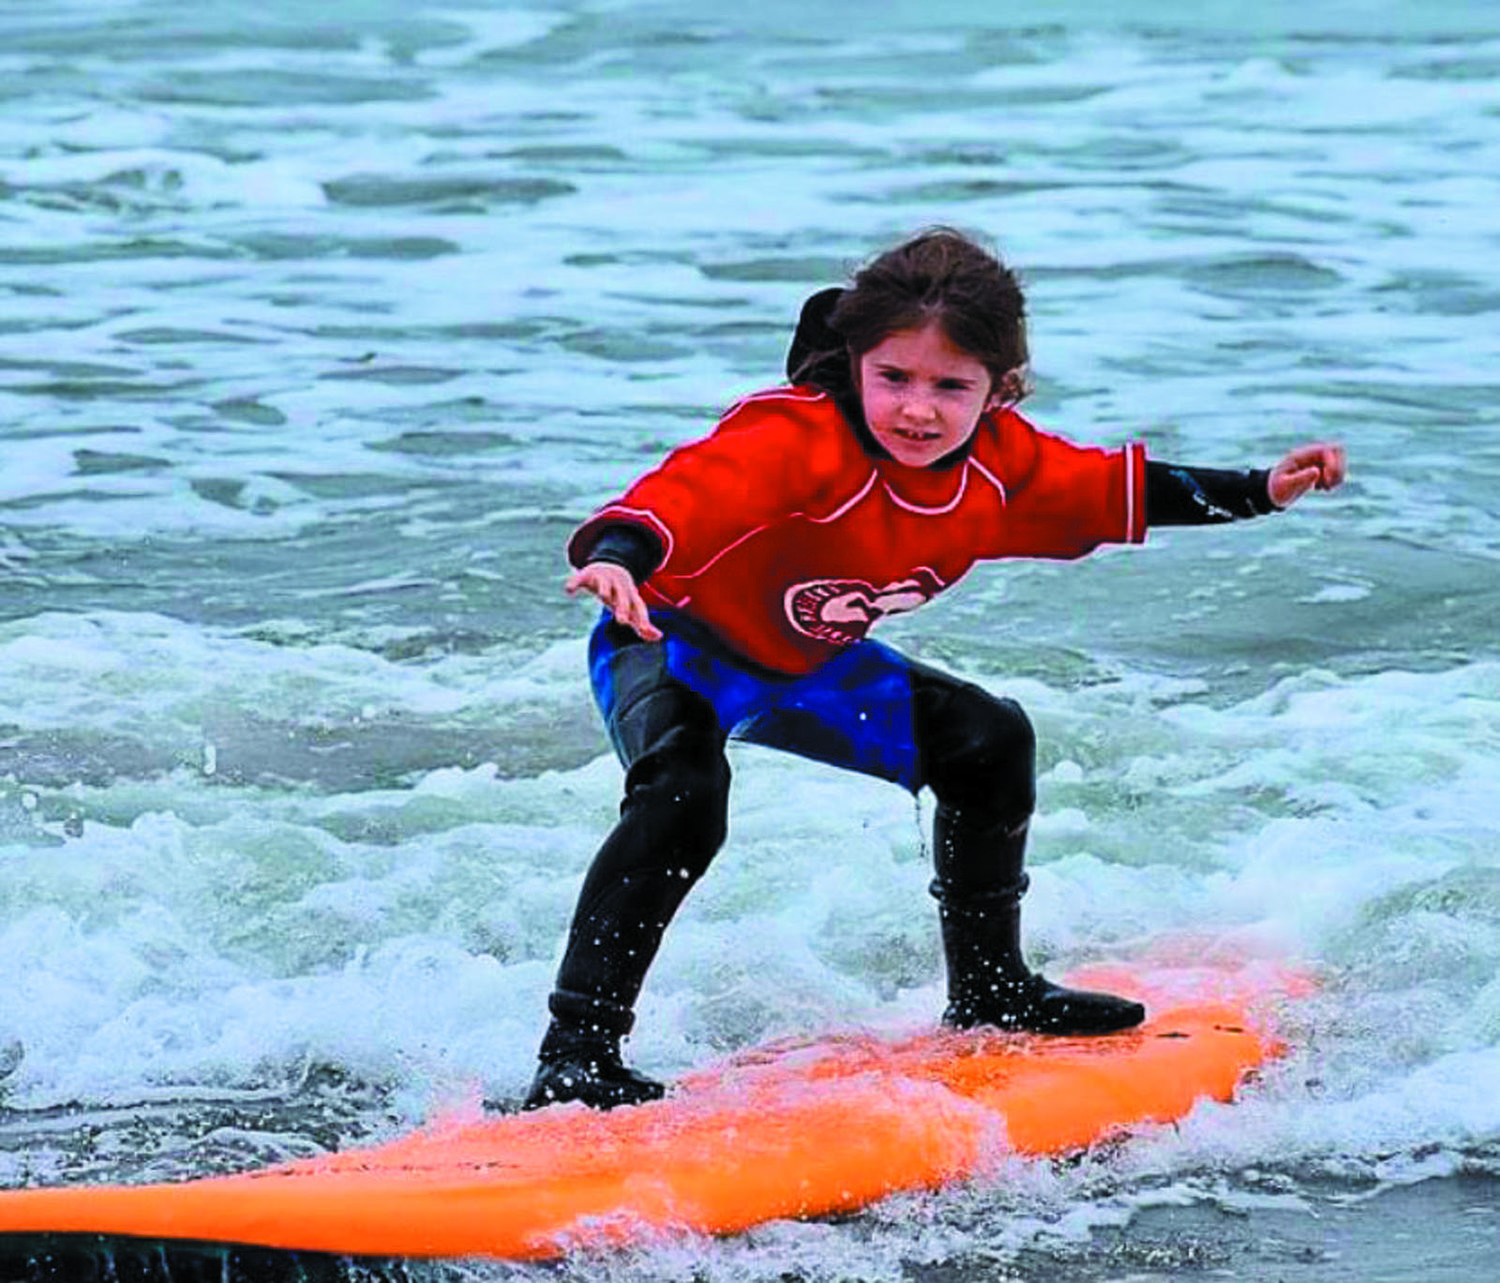 CATCHING A WAVE: